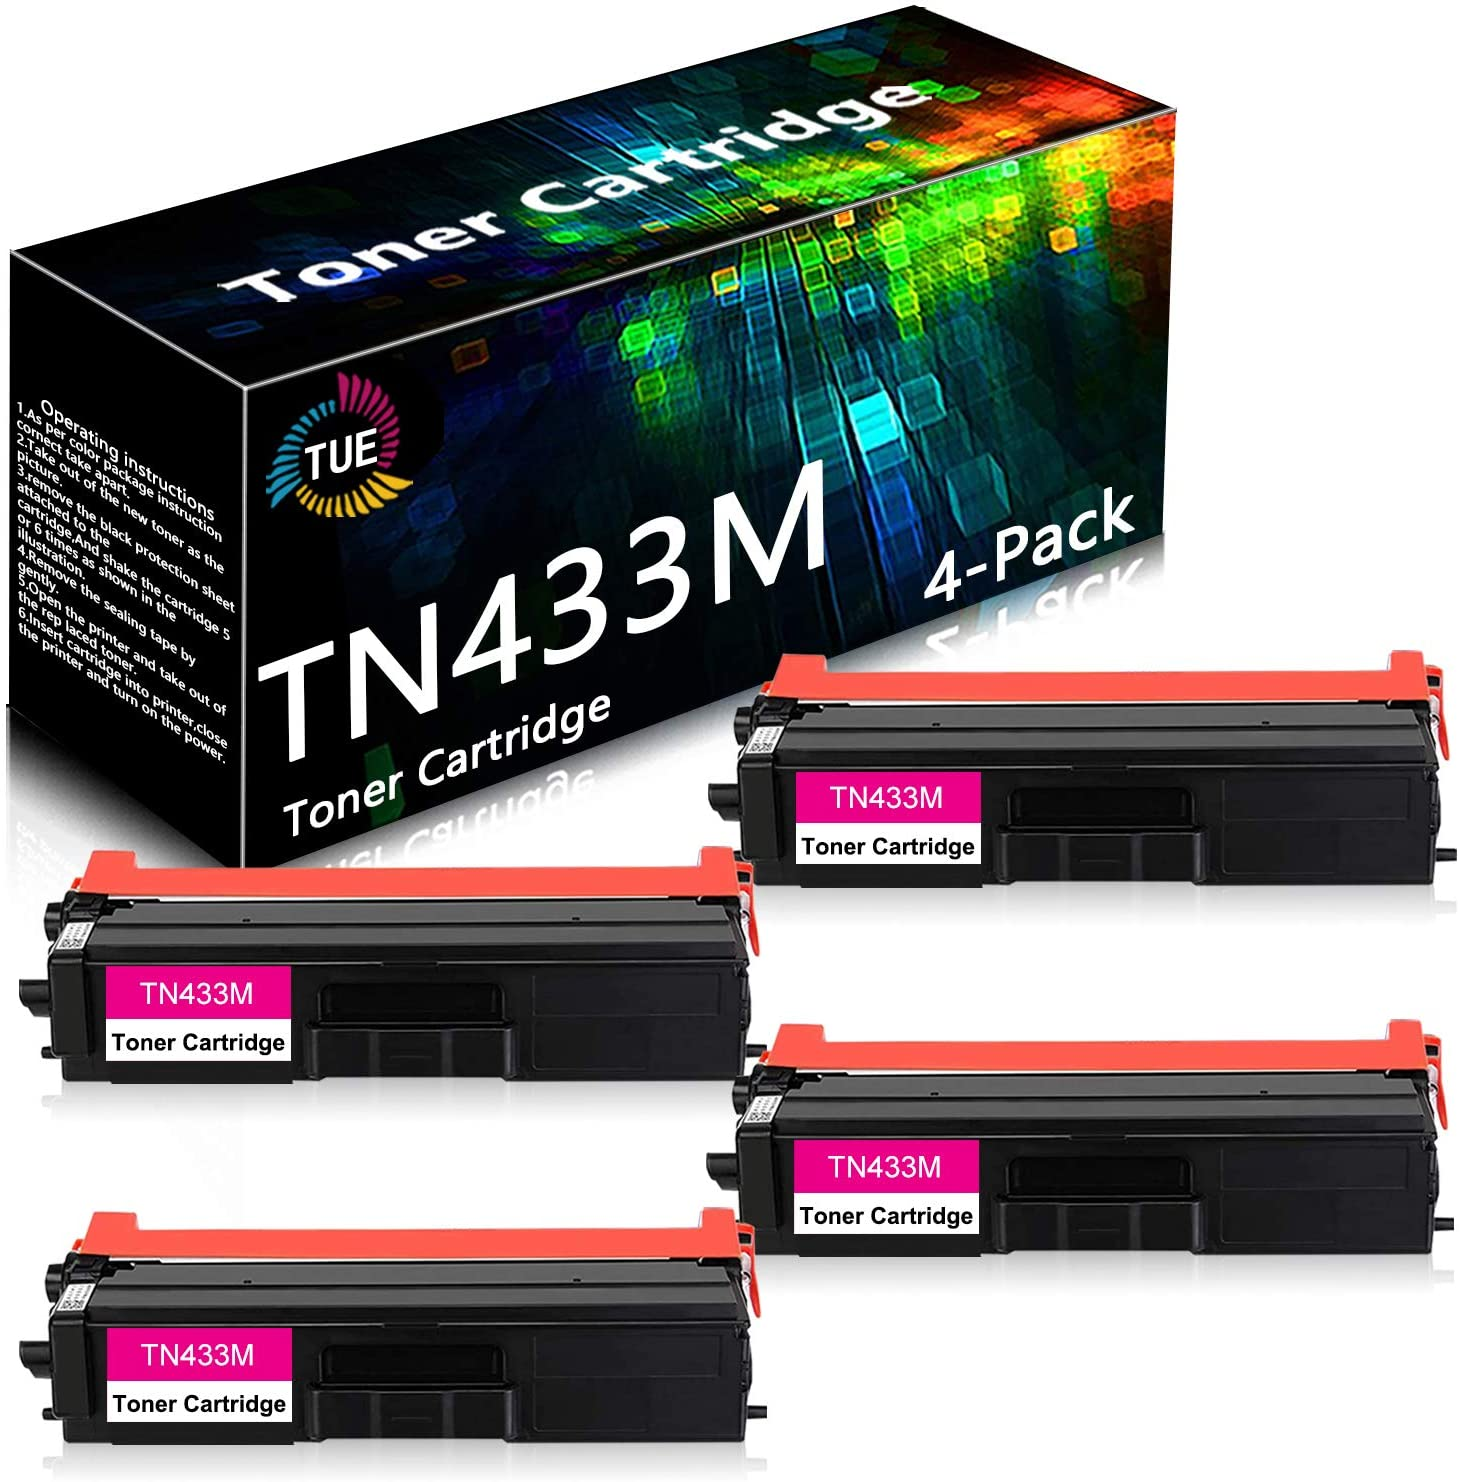 TN433M TN-433M (4 Pack,Magenta) Compatible High Yield Toner Cartridge Replacement for Brother HL-L8260CDW L8360CDW L8360CDWT MFC-L8610CDW L8690CDW L8900CDW DCP-L8410CDW Printer Toner Cartridge